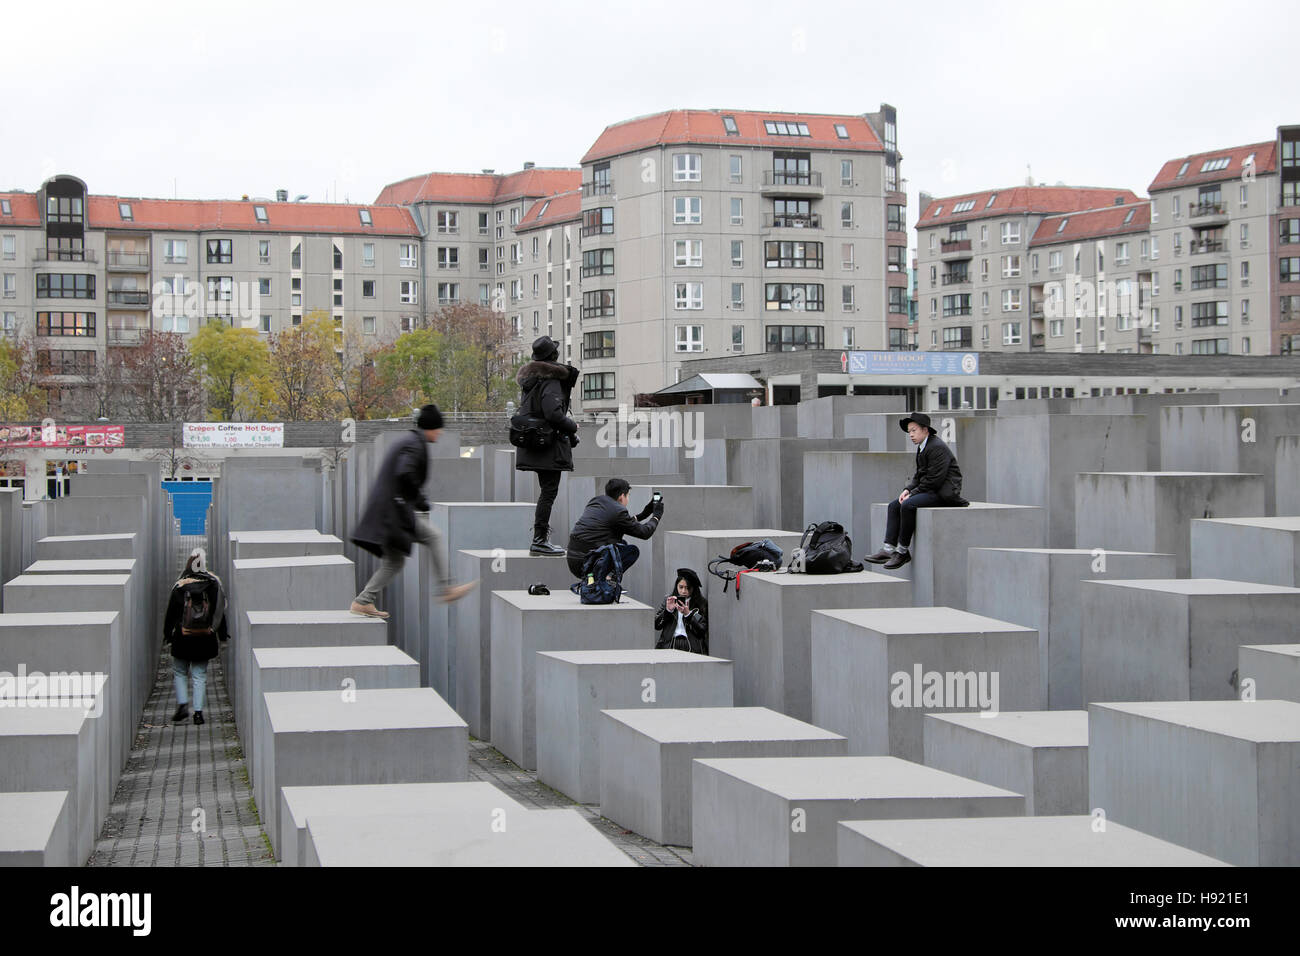 Tourists standing photographing on the Memorial to the Murdered Jews of Europe in Berlin, Germany, Europe, EU   - Stock Image